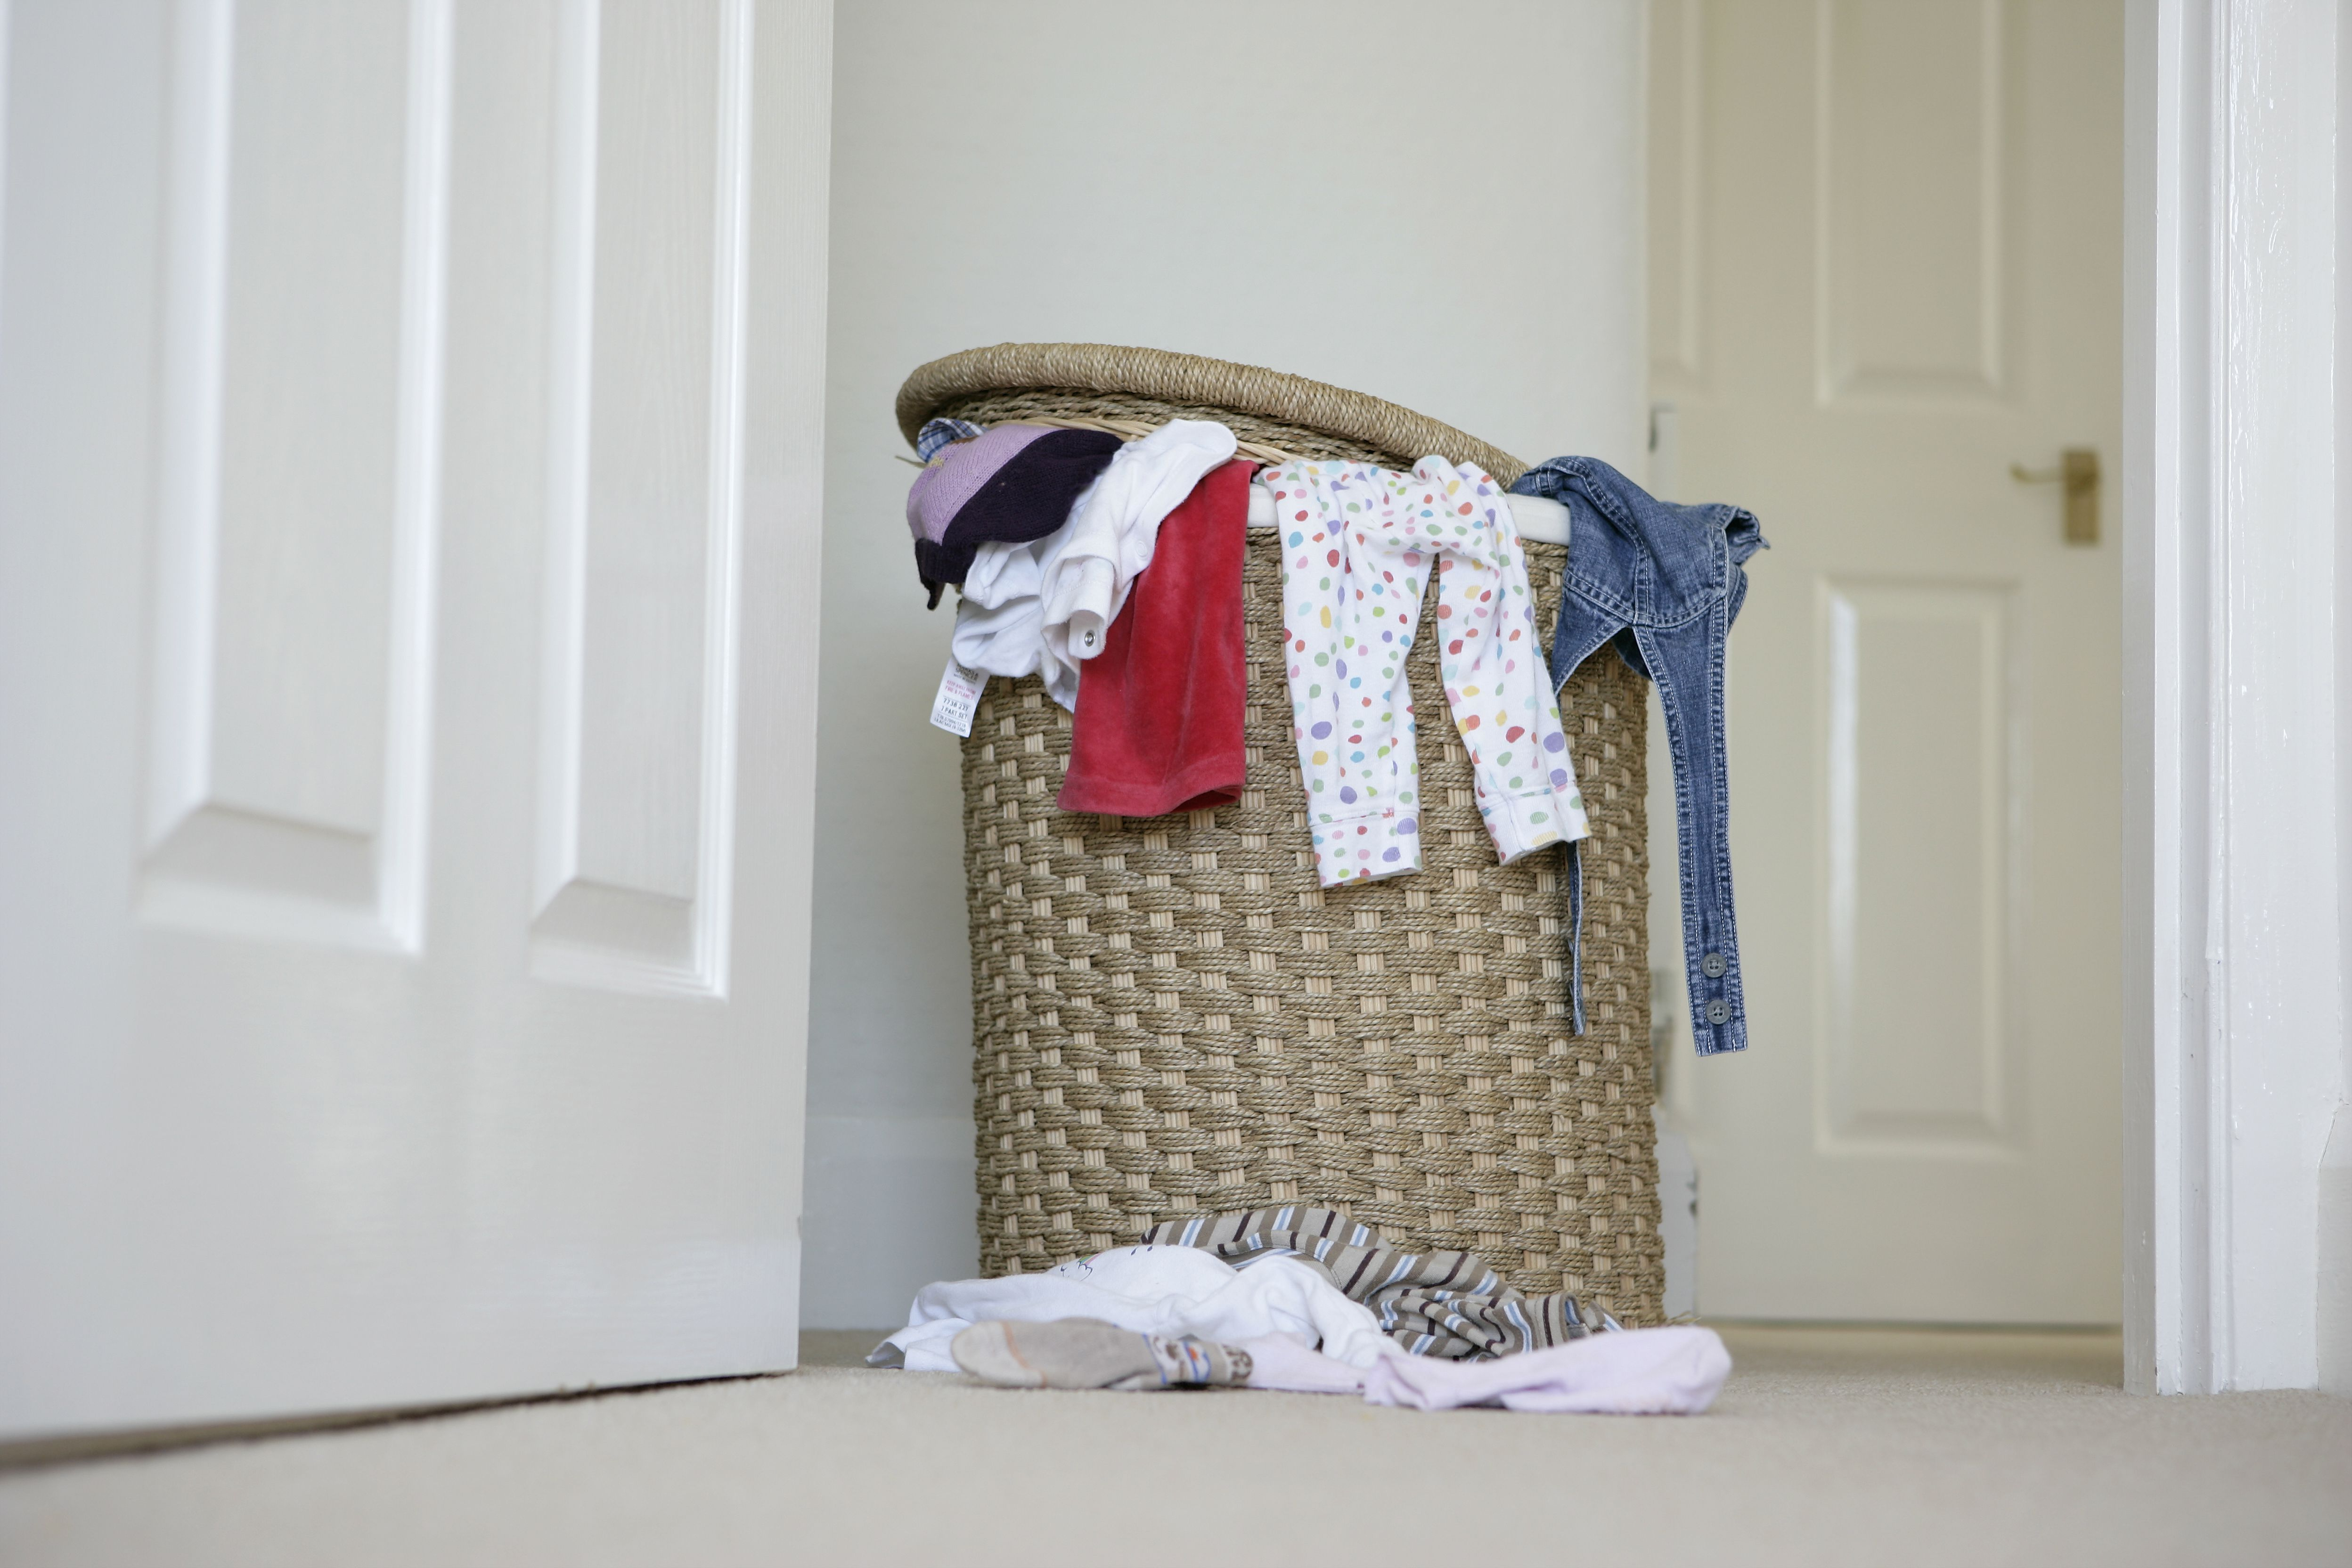 How To Remove Laundry Clothes Hamper Odor